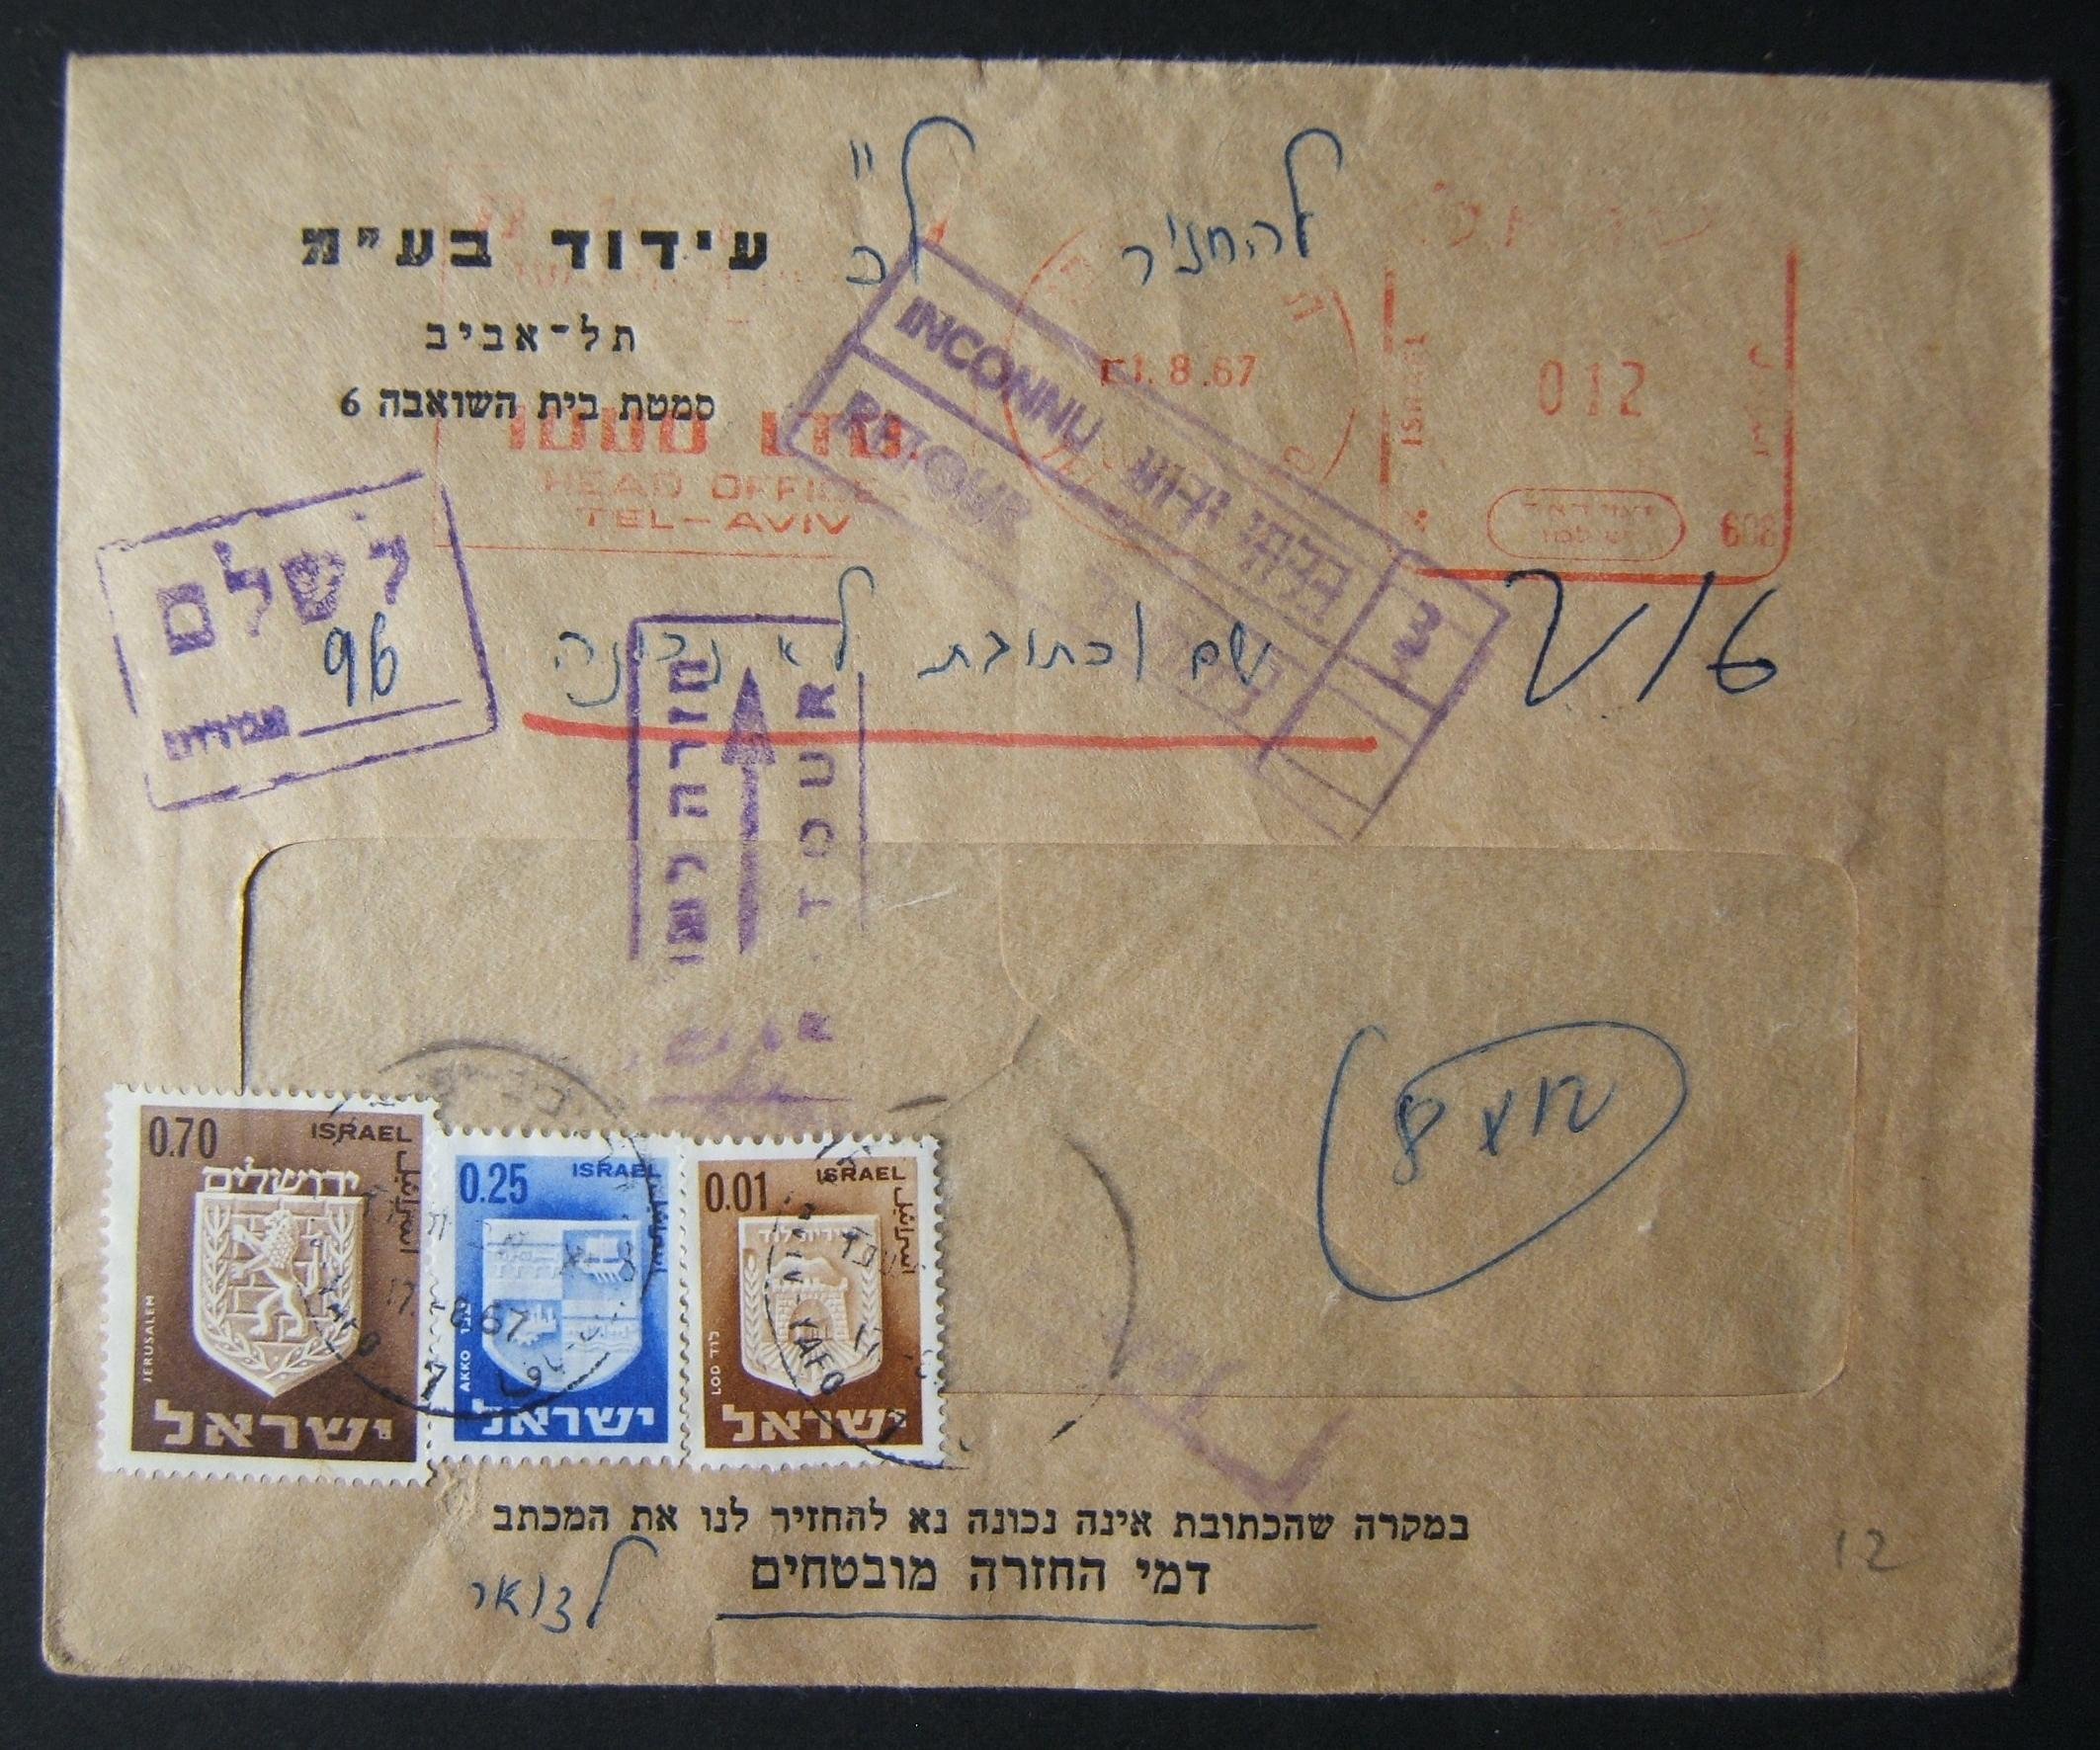 1967 domestic 'top of the pile' taxed franking: 1-8-67 printed matter cover ex TLV branch of Idud Ltd. and franked by meter payment at the DO-12 period 12 Ag PM rate but returned t